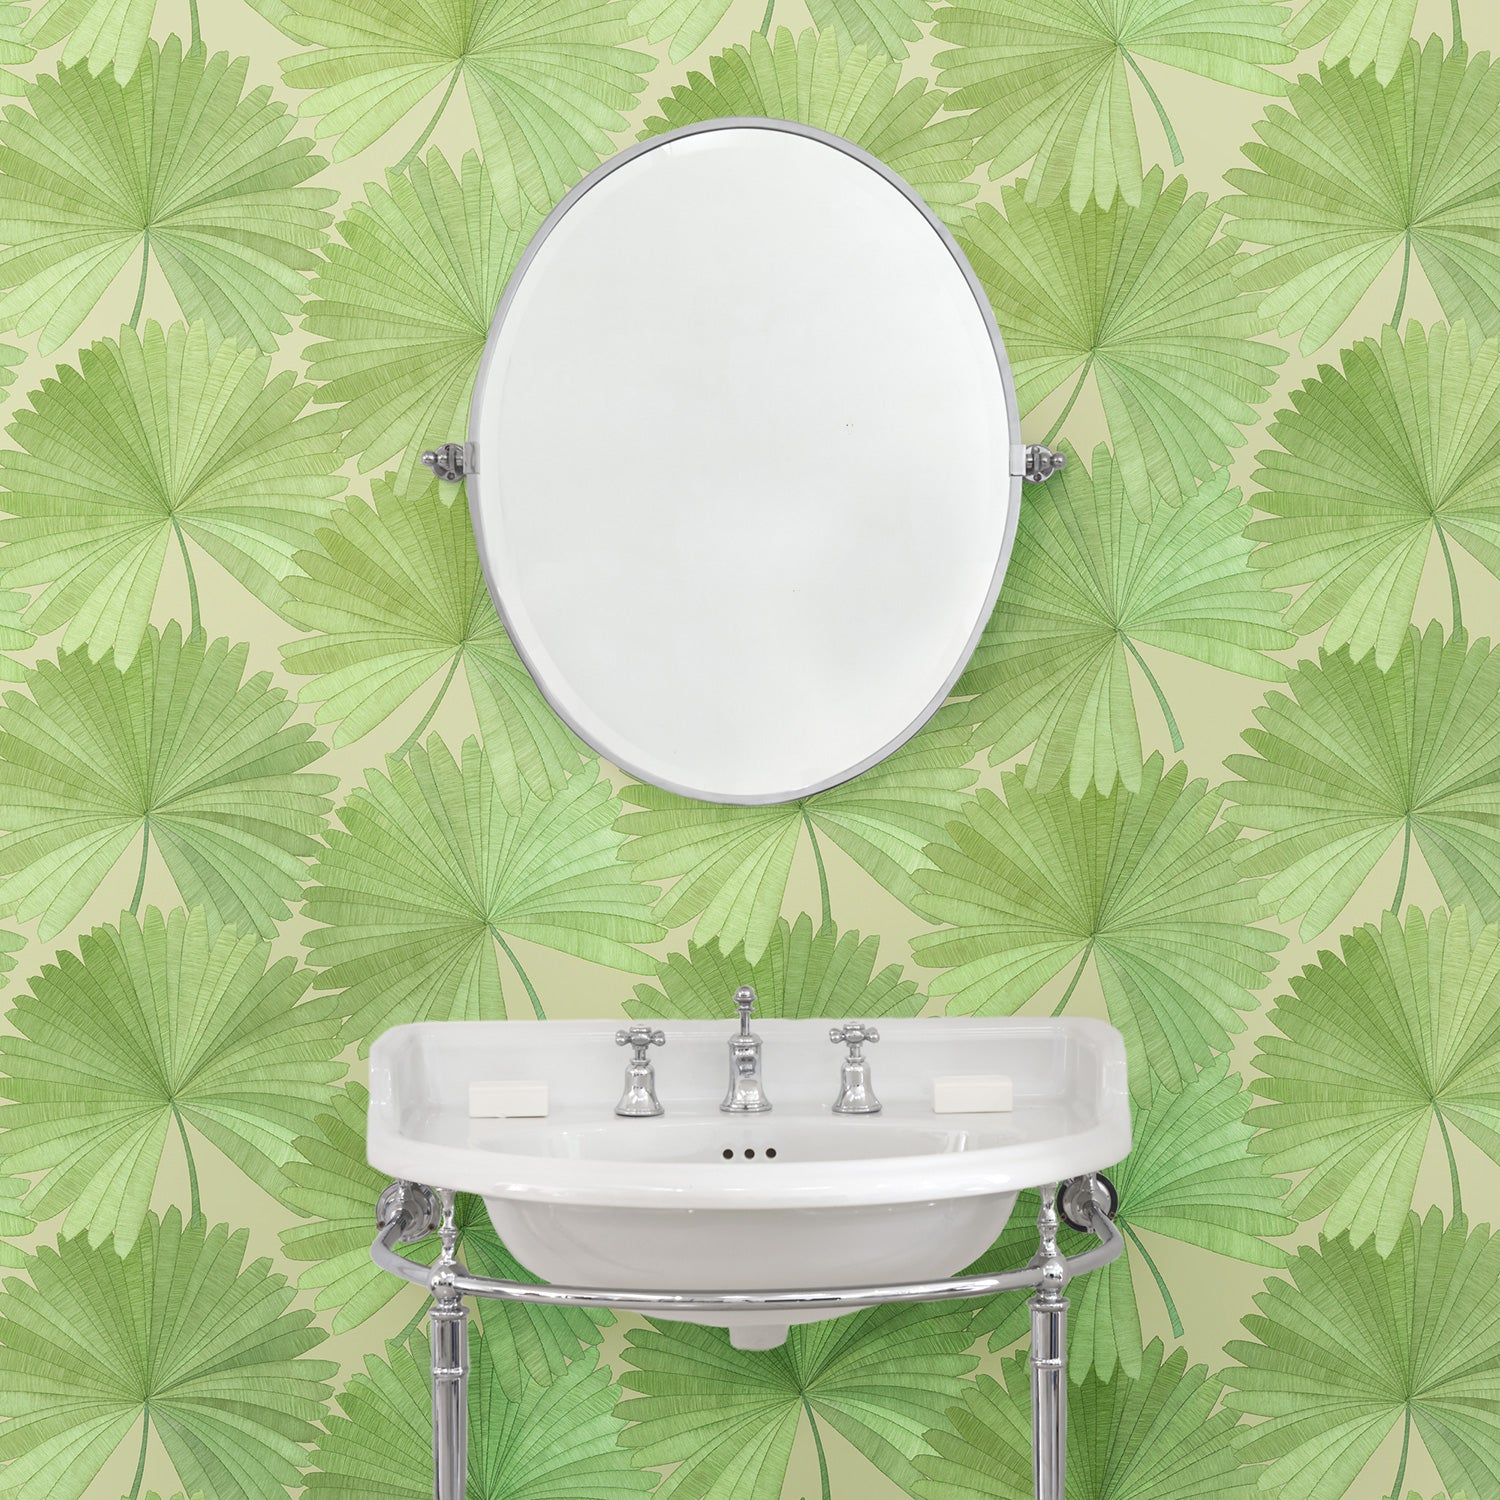 Bathroom featuring a Luxury wallpaper featuring a tropical palm design in green colours